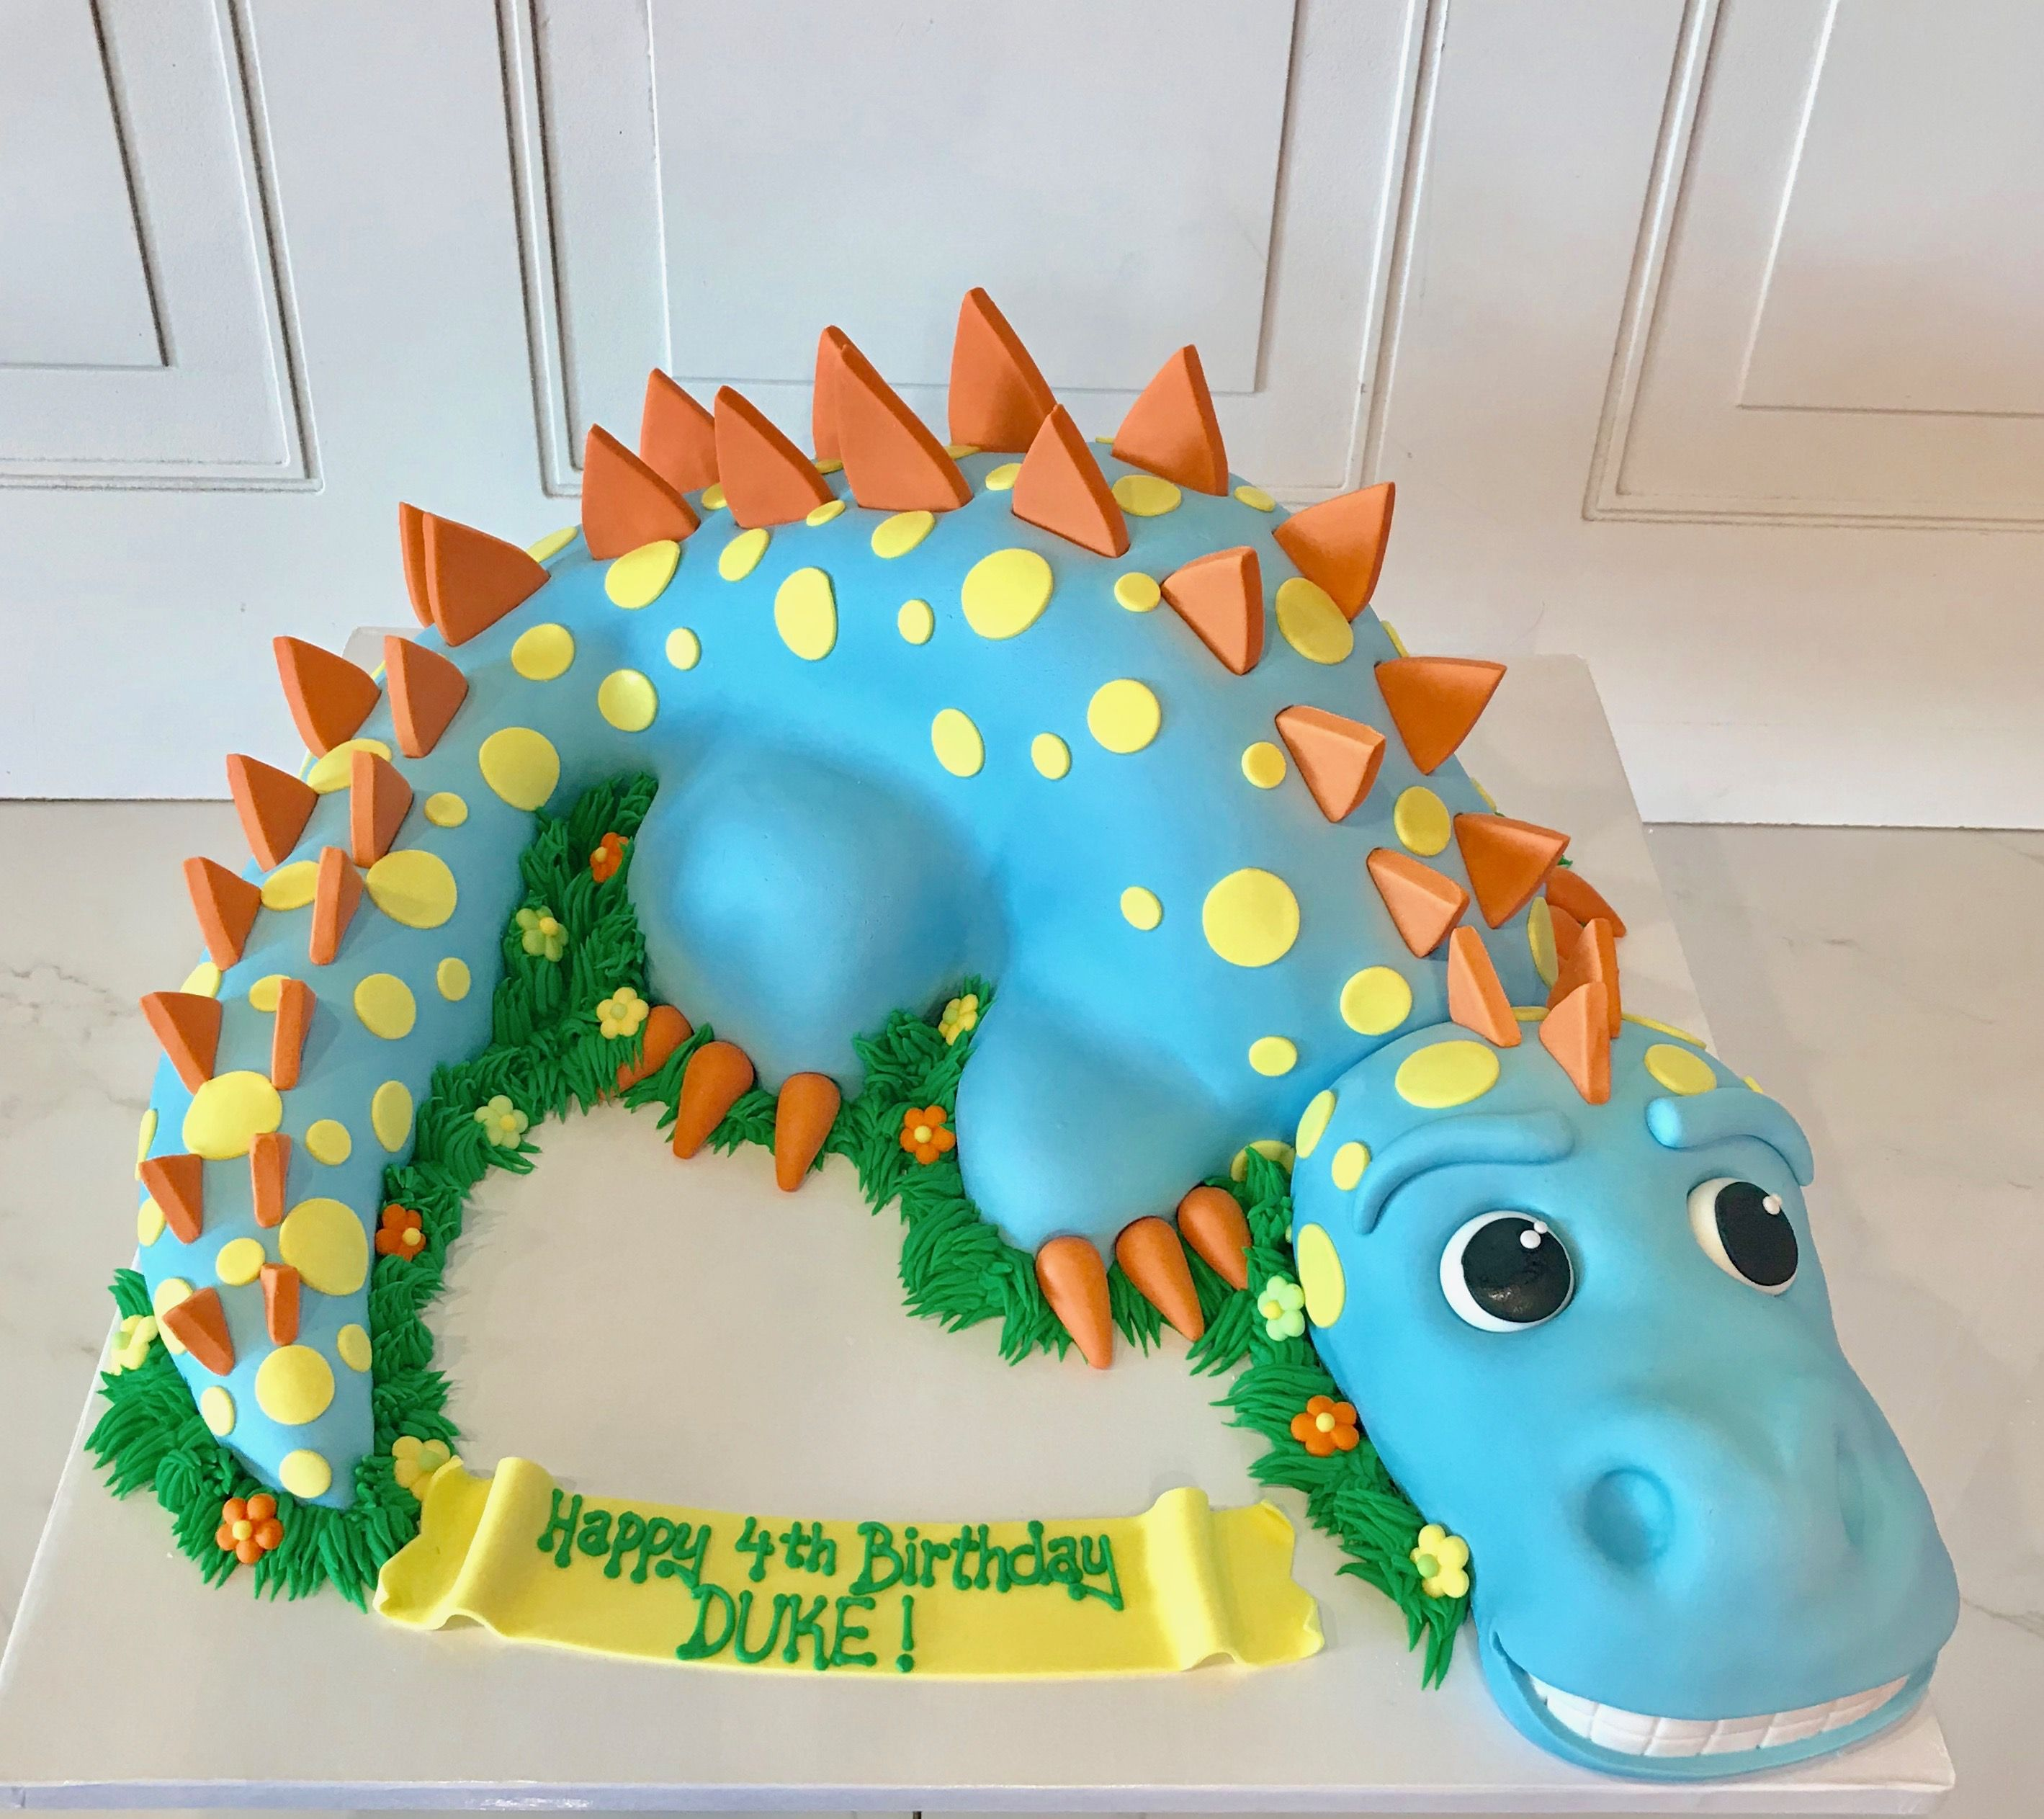 Cool Childrens Birthday Cakes That Are Unique And Delicious Funny Birthday Cards Online Inifodamsfinfo